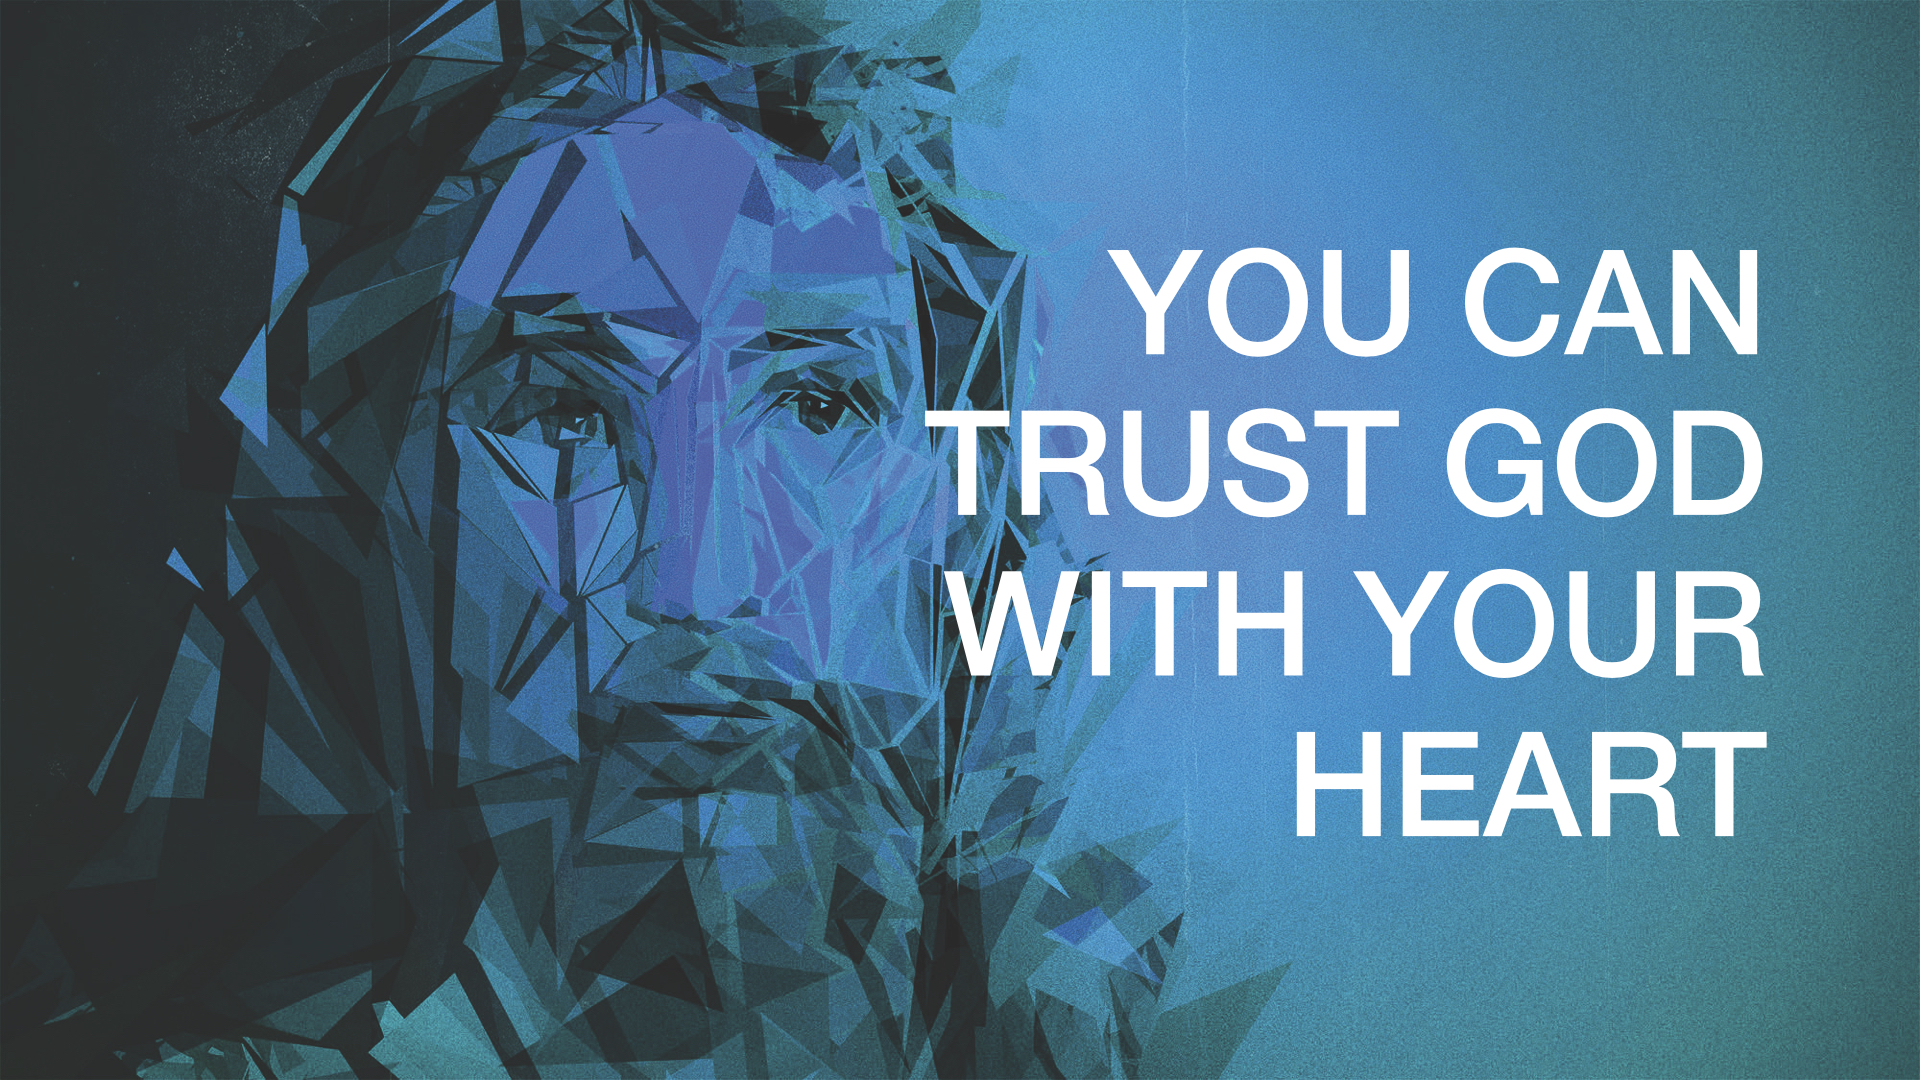 3 Trust God with Your Heart.019.jpeg